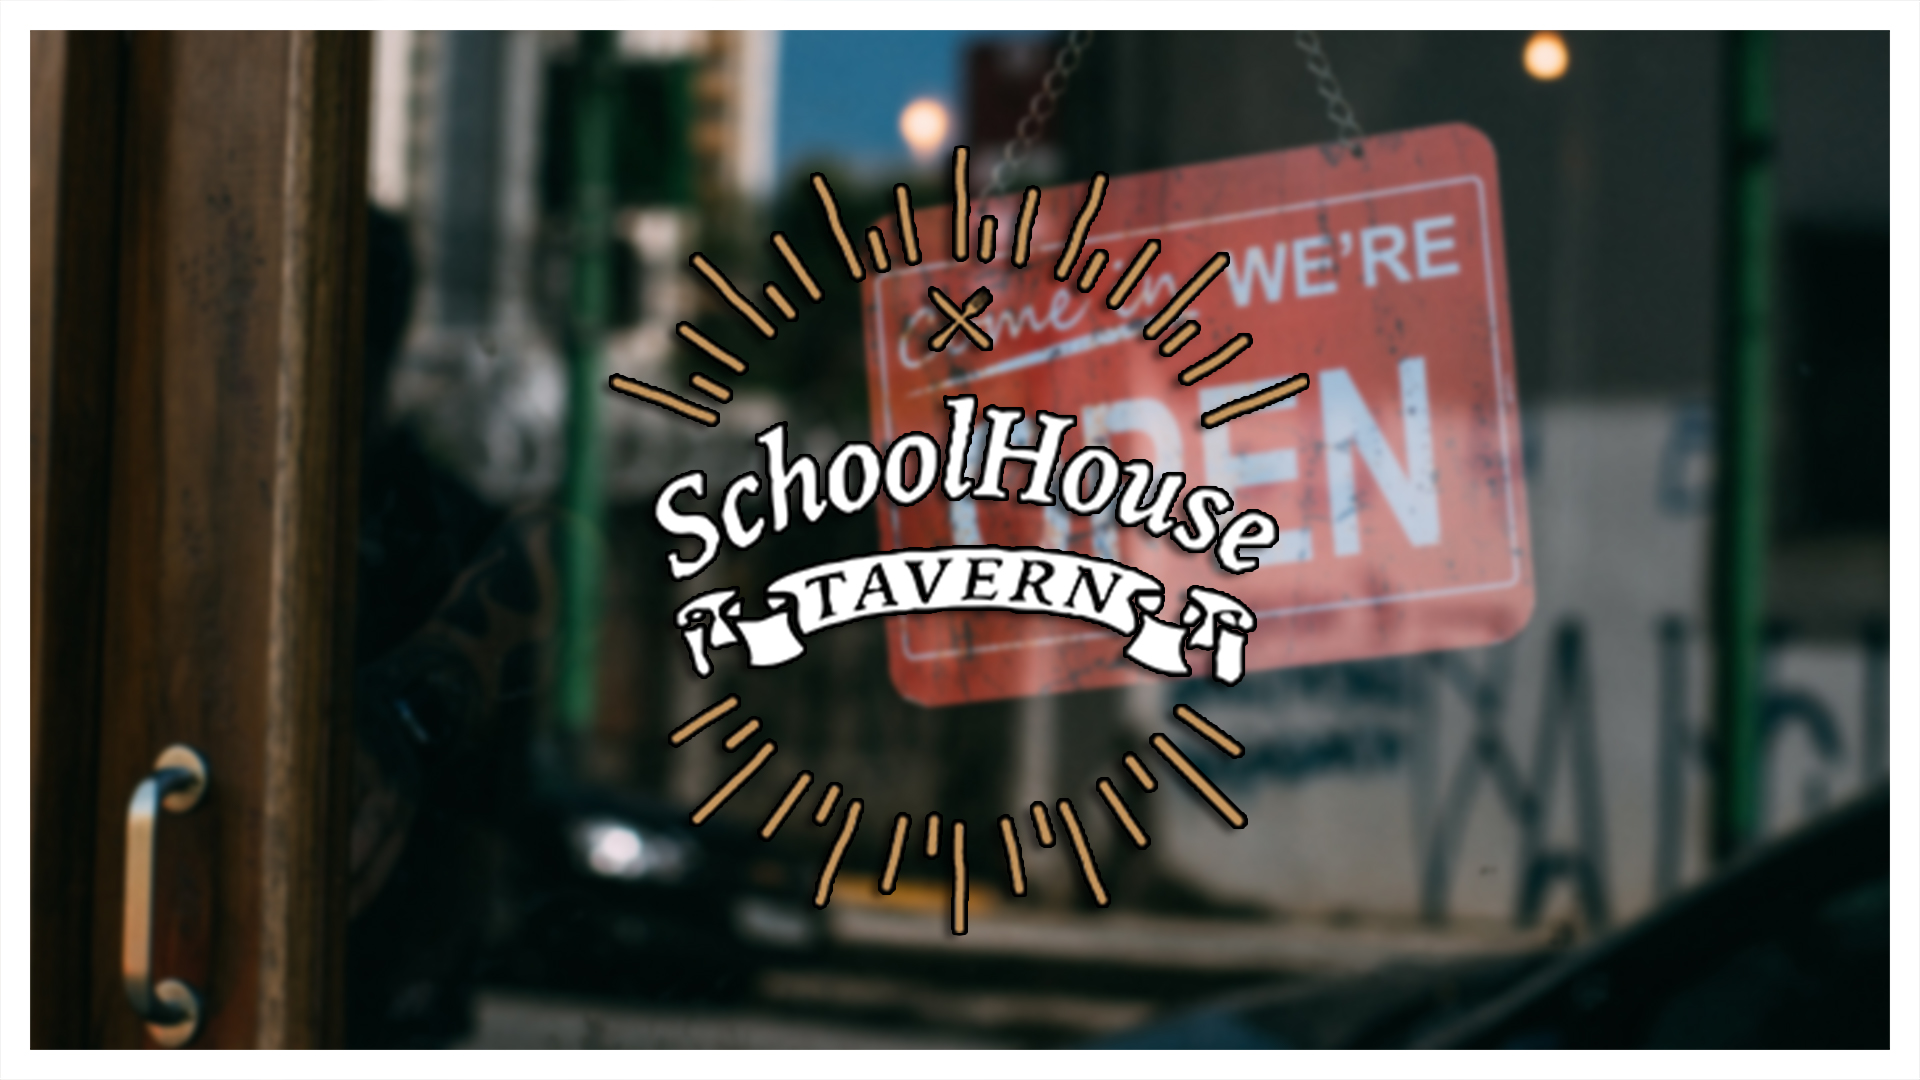 SchoolHouse Tavern - Open for Dine In or Take Out